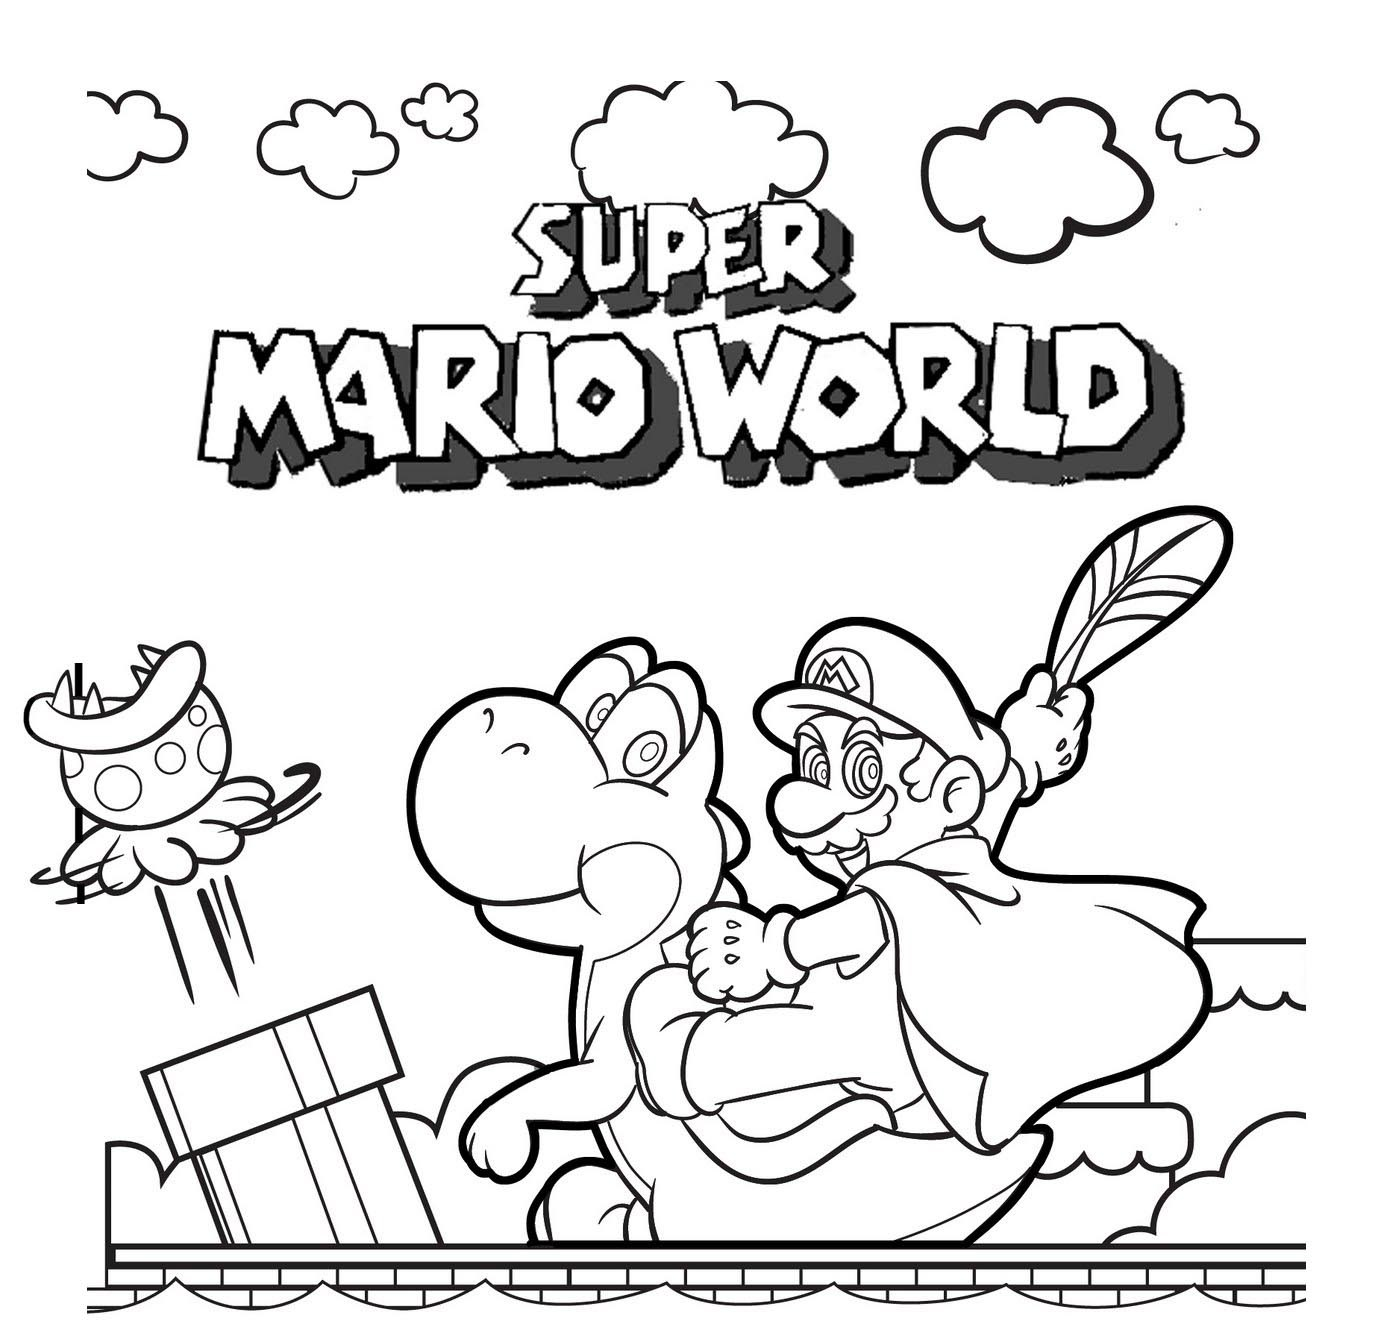 Super-Mario-Adventure-Coloring-Pages